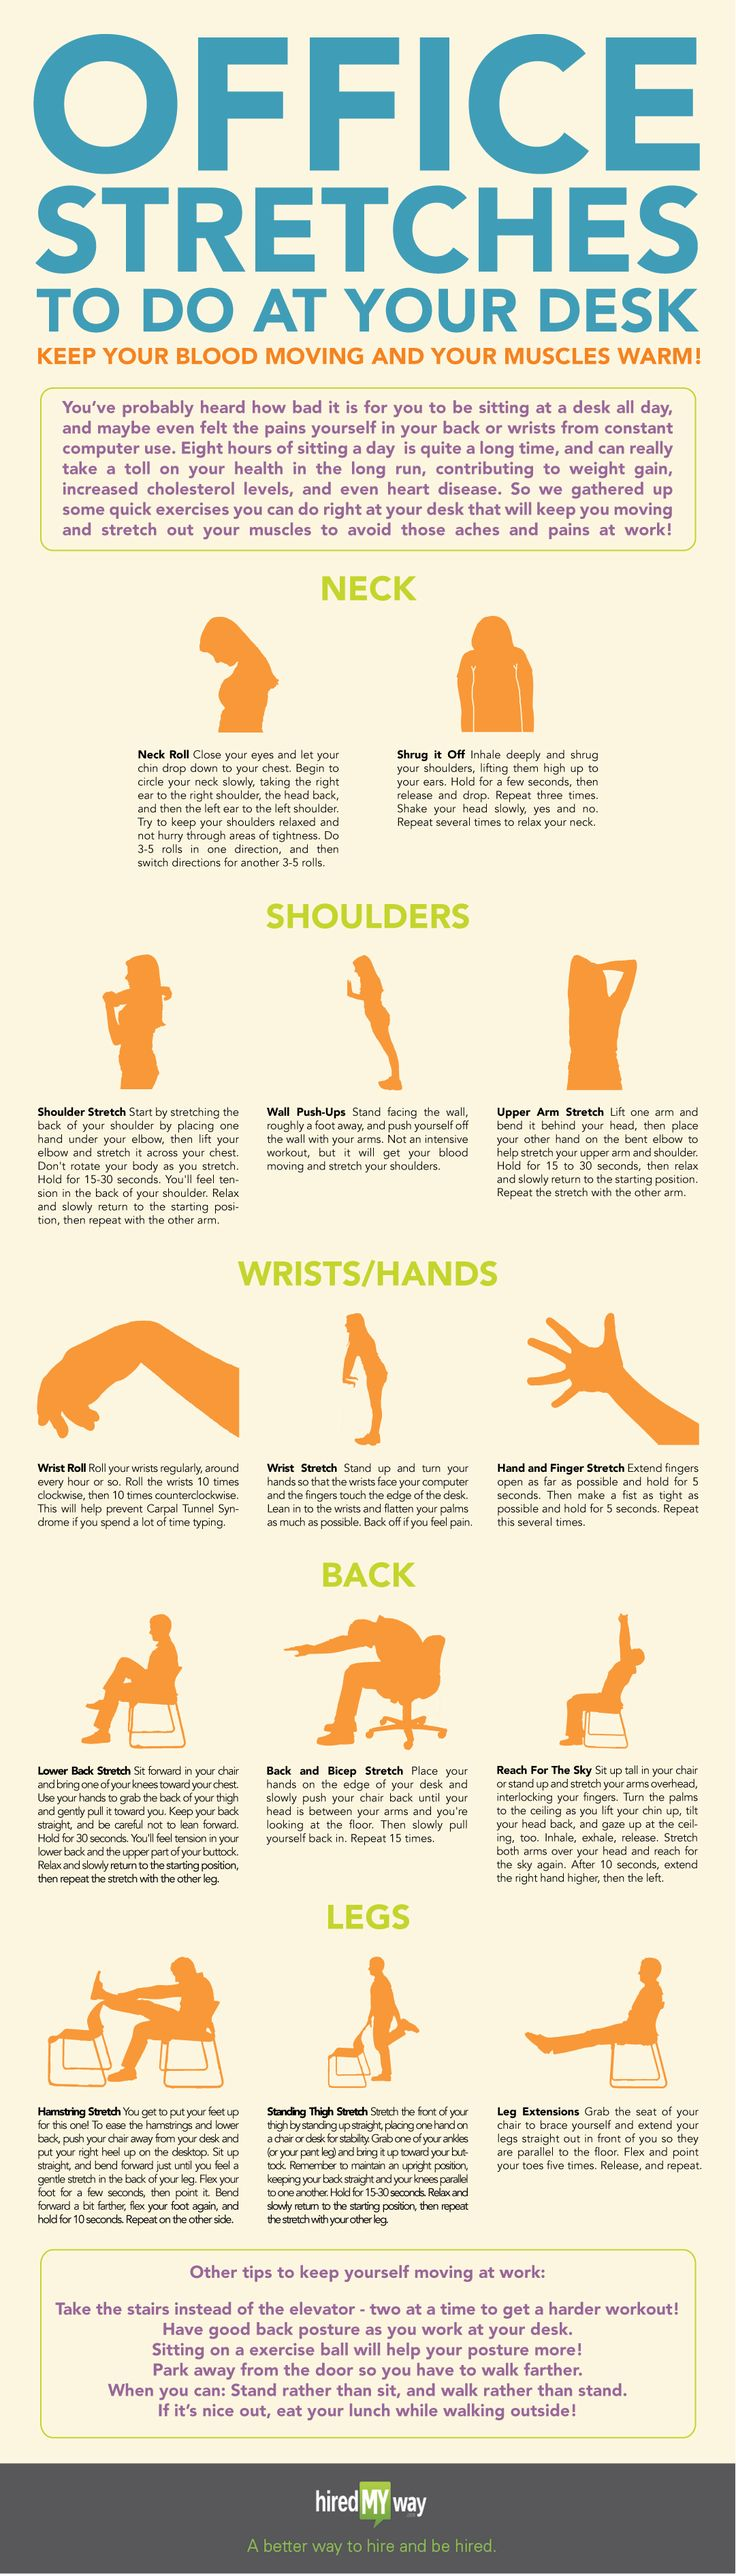 Office Stretches! Neck and back pain from sitting at your desk all day? Check out these stretches to help you out!